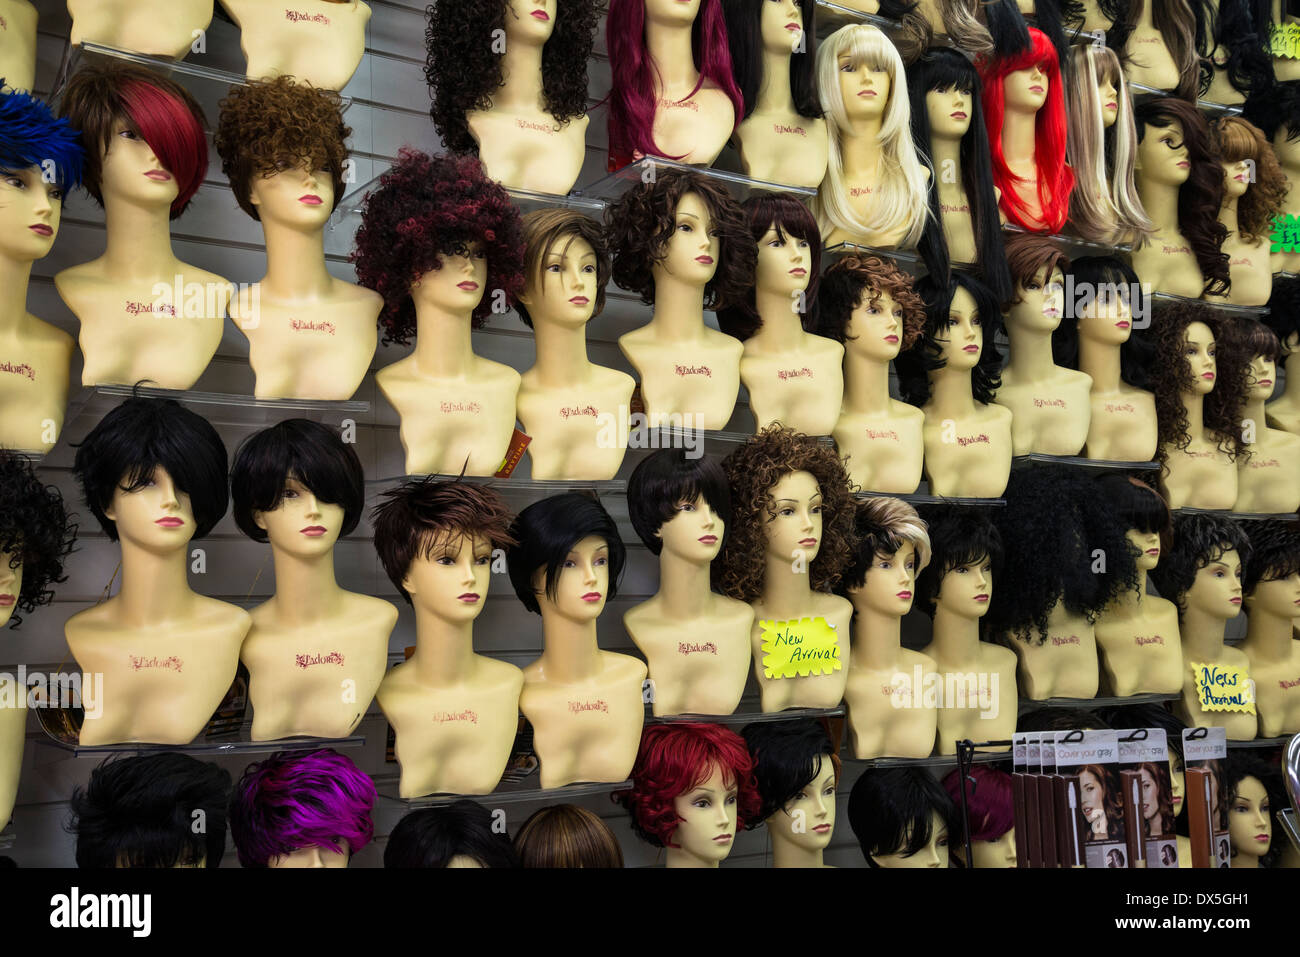 Extension de Cheveux et perruques boutique, Brixton, London, UK Photo Stock